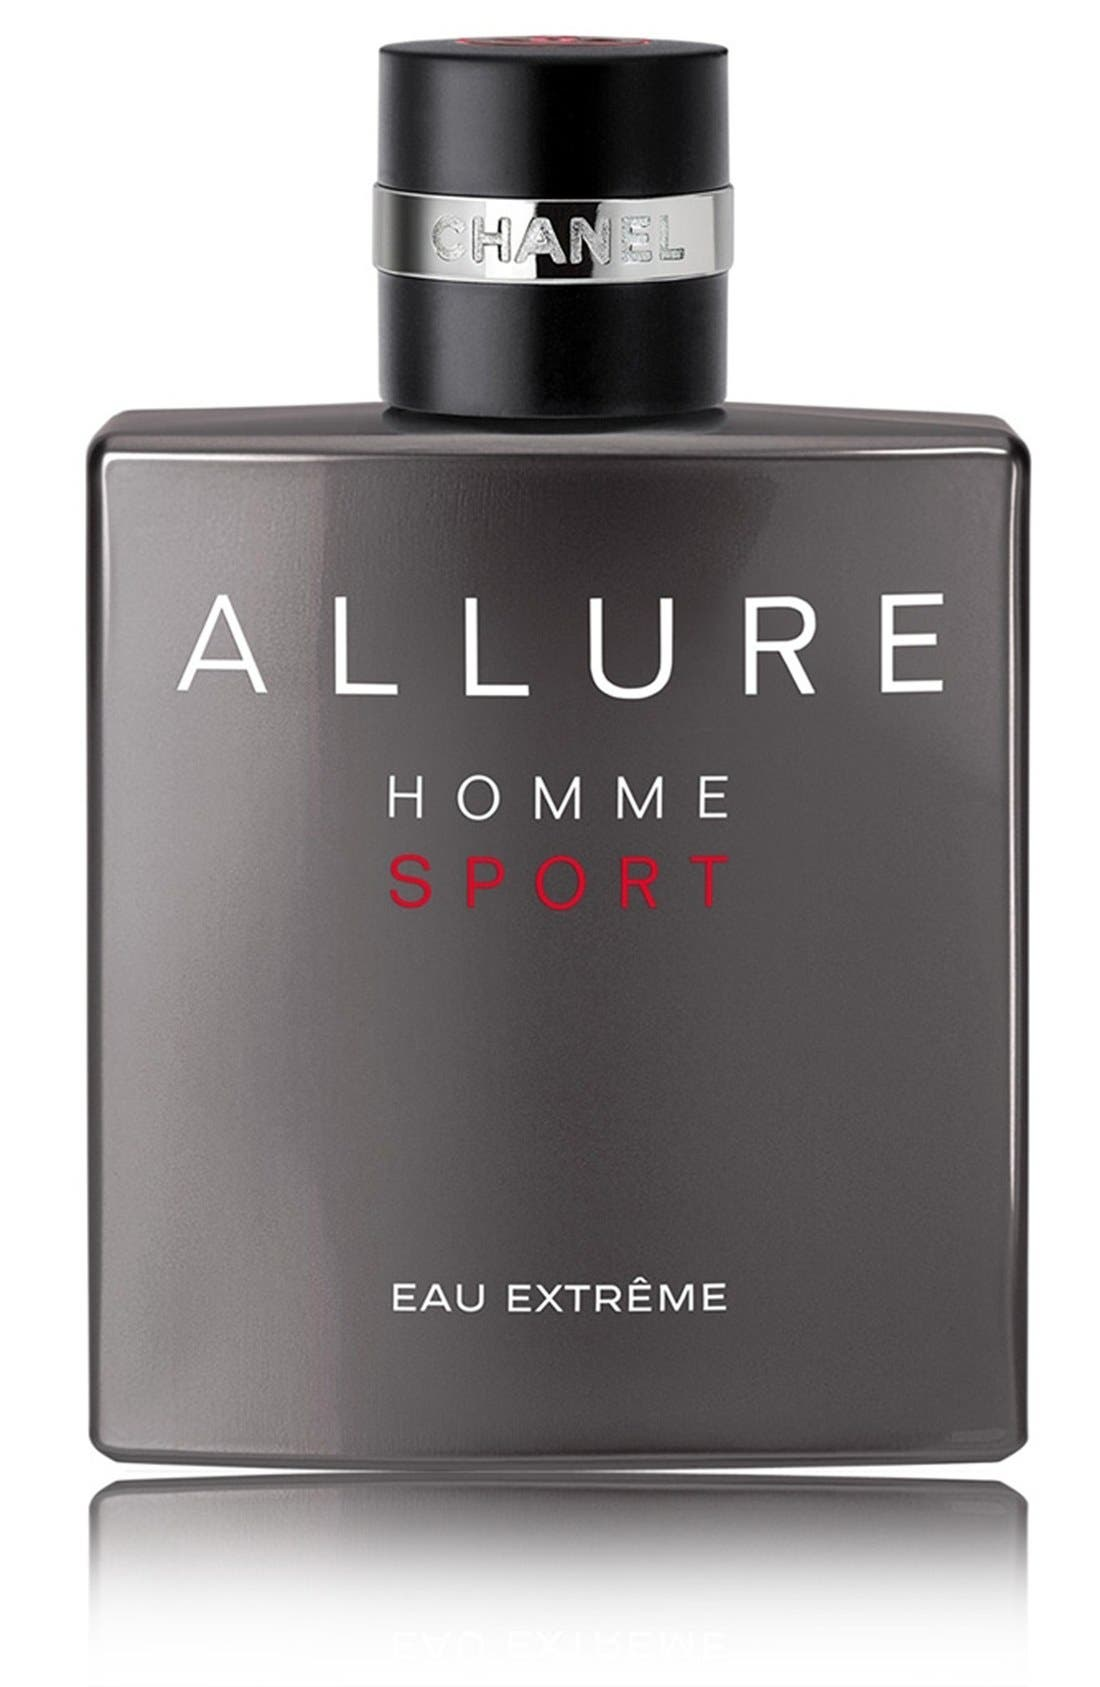 CHANEL, ALLURE HOMME SPORT EAU EXTREME Eau de Parfum, Alternate thumbnail 3, color, NOL COLOR